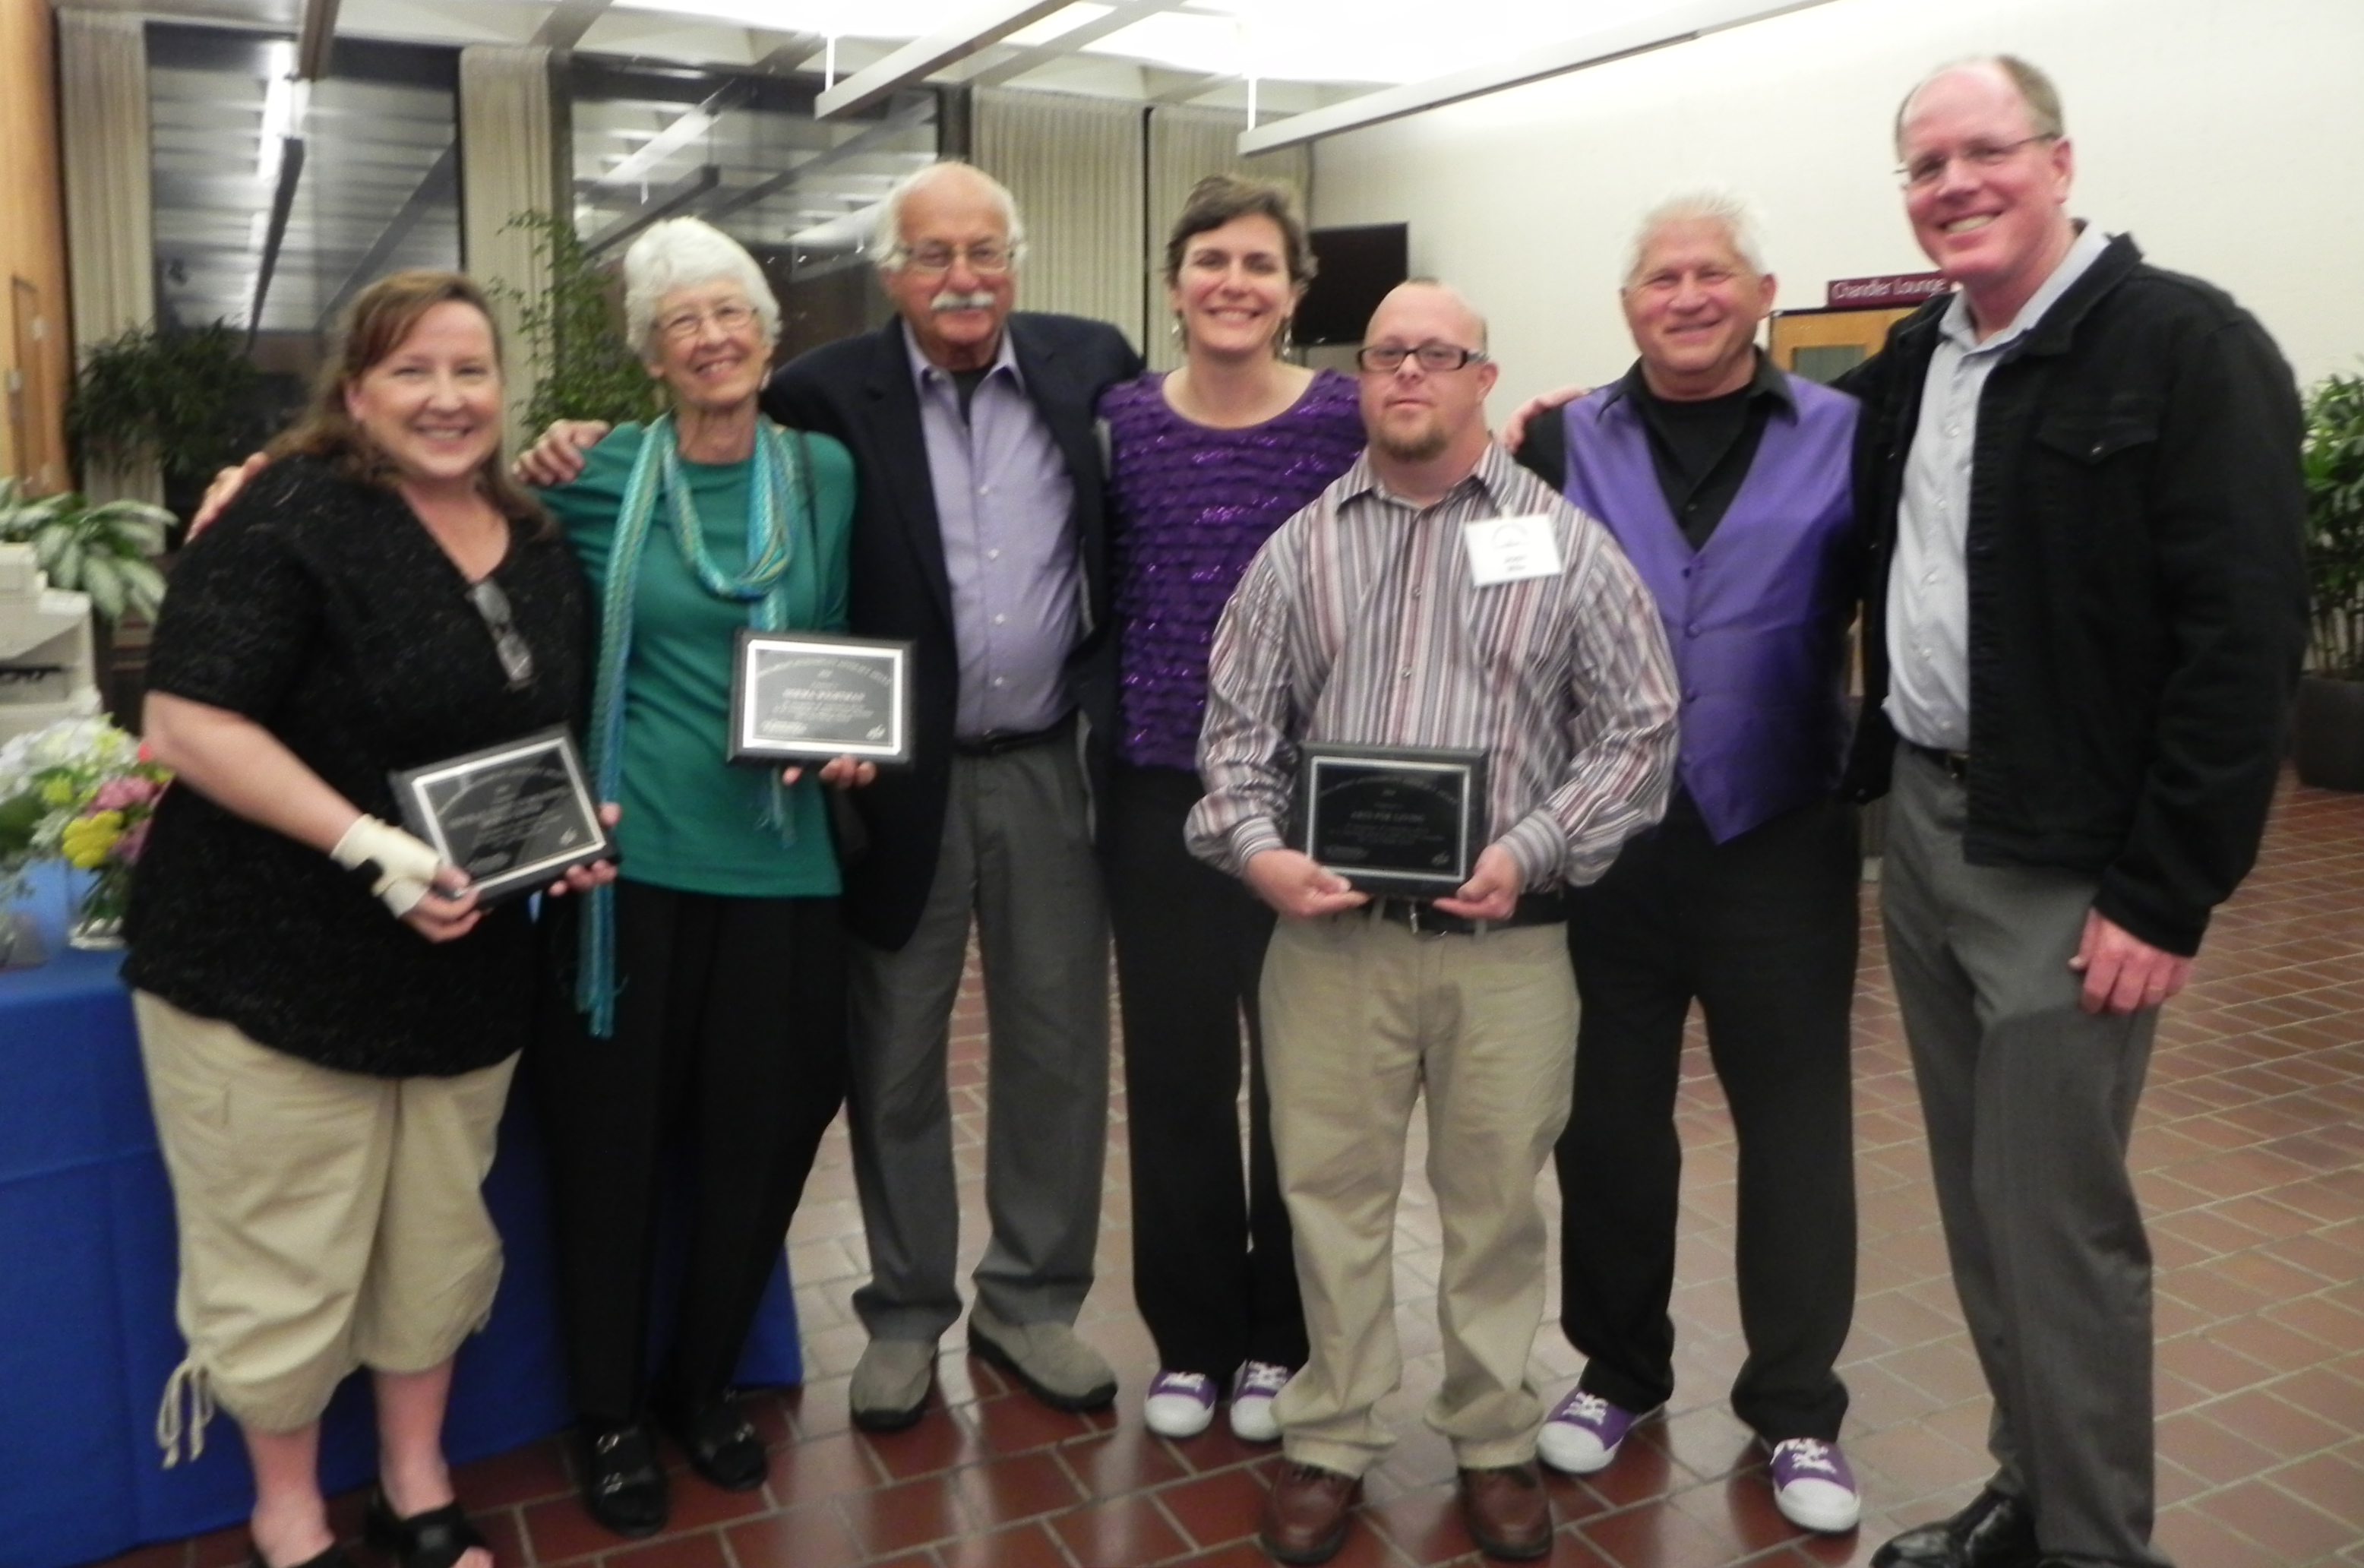 Image of the 2014 Winners of the Paul Wolff Accessibility Advocacy Awards